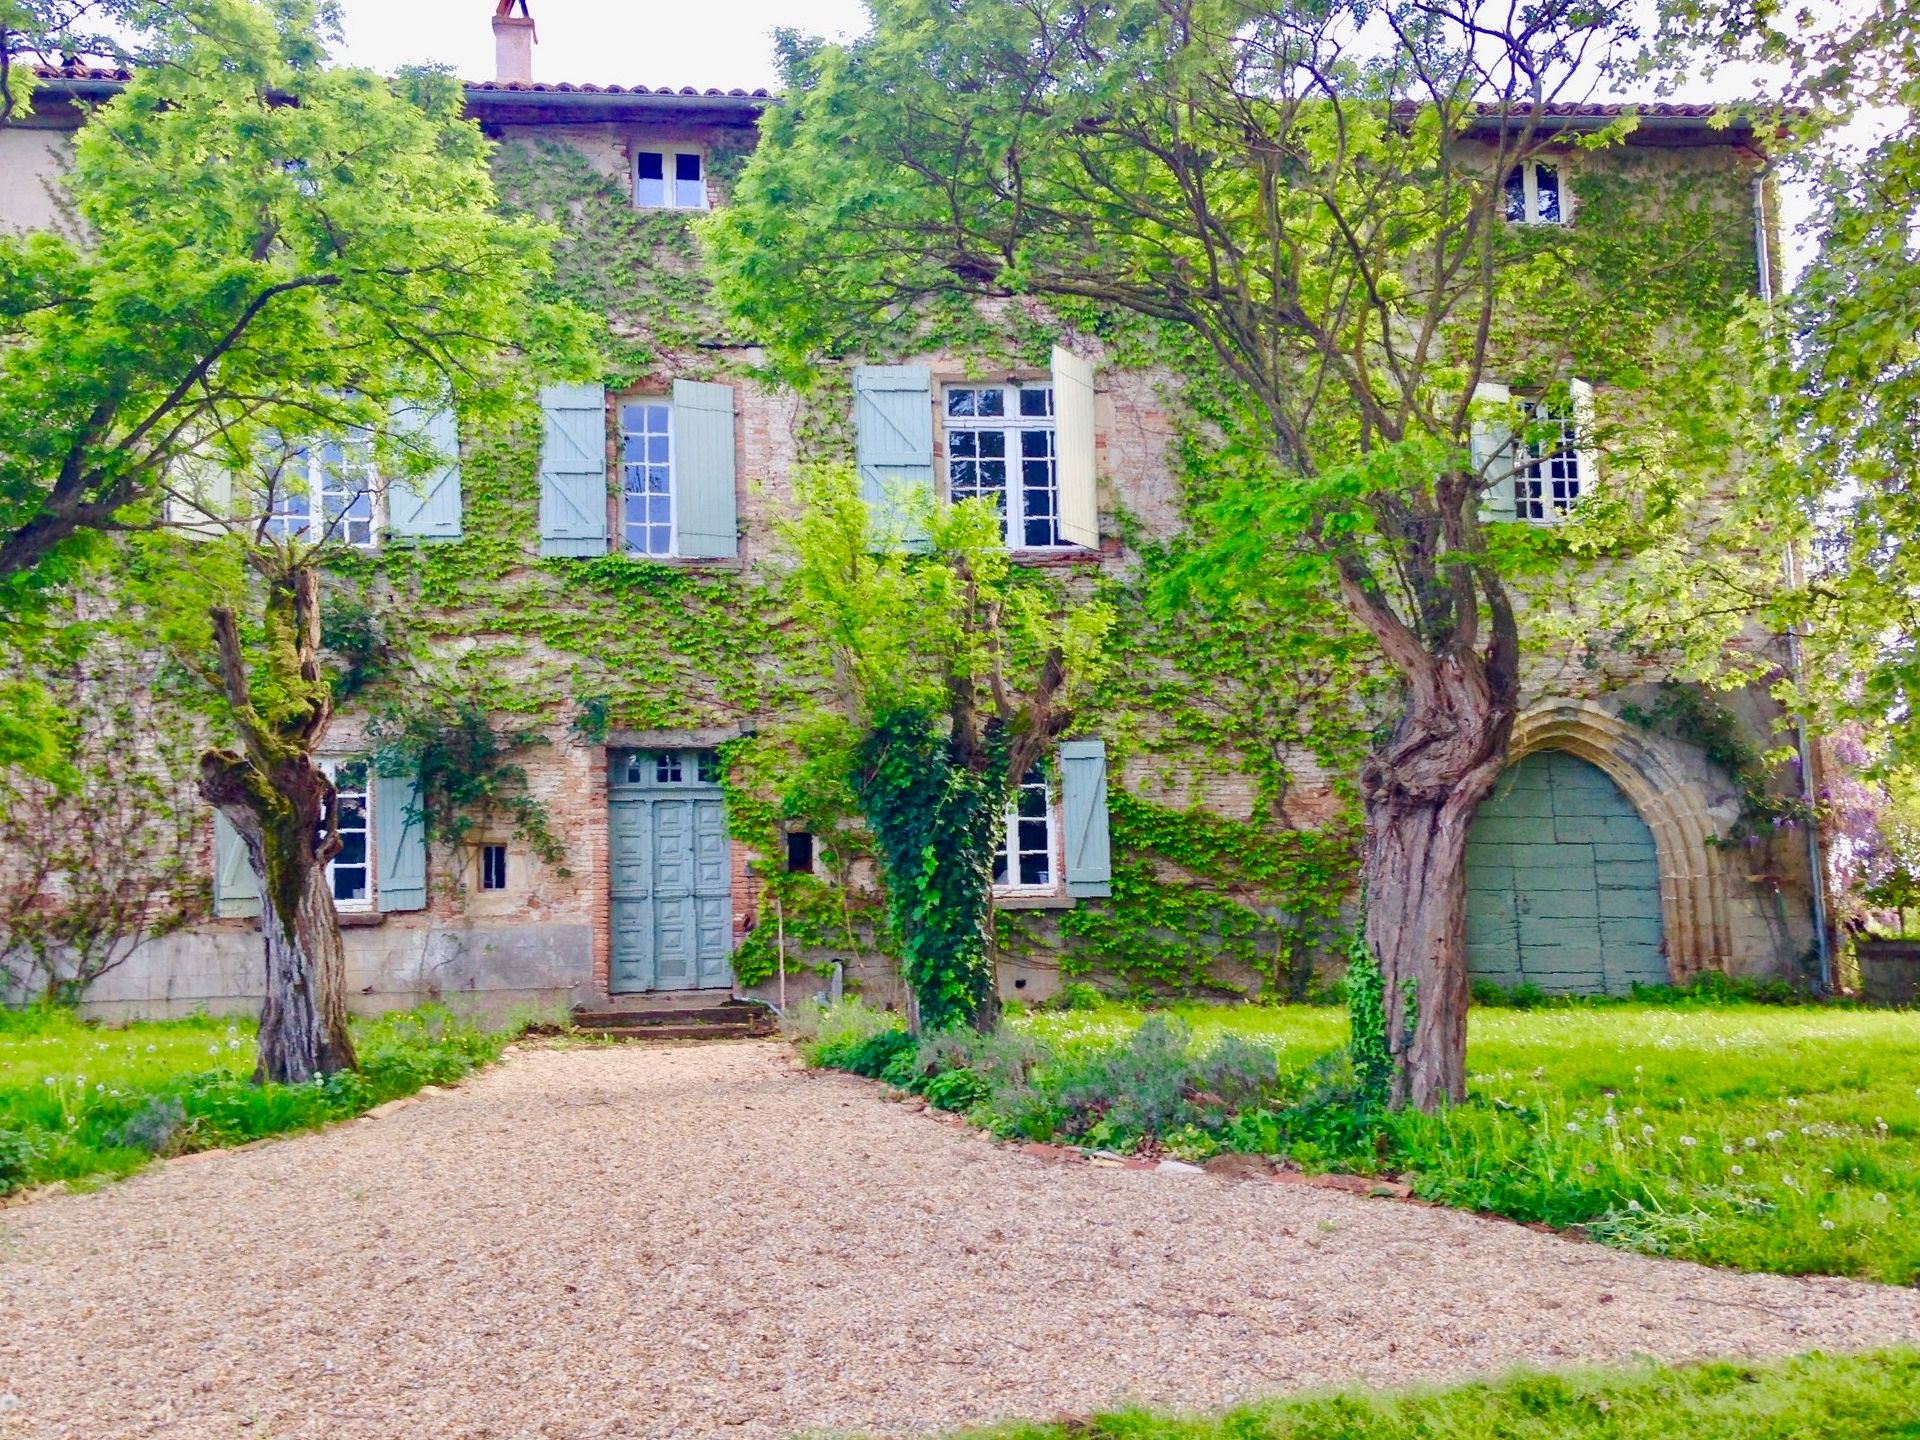 Lovely chateau in part dating back to the 14th Century